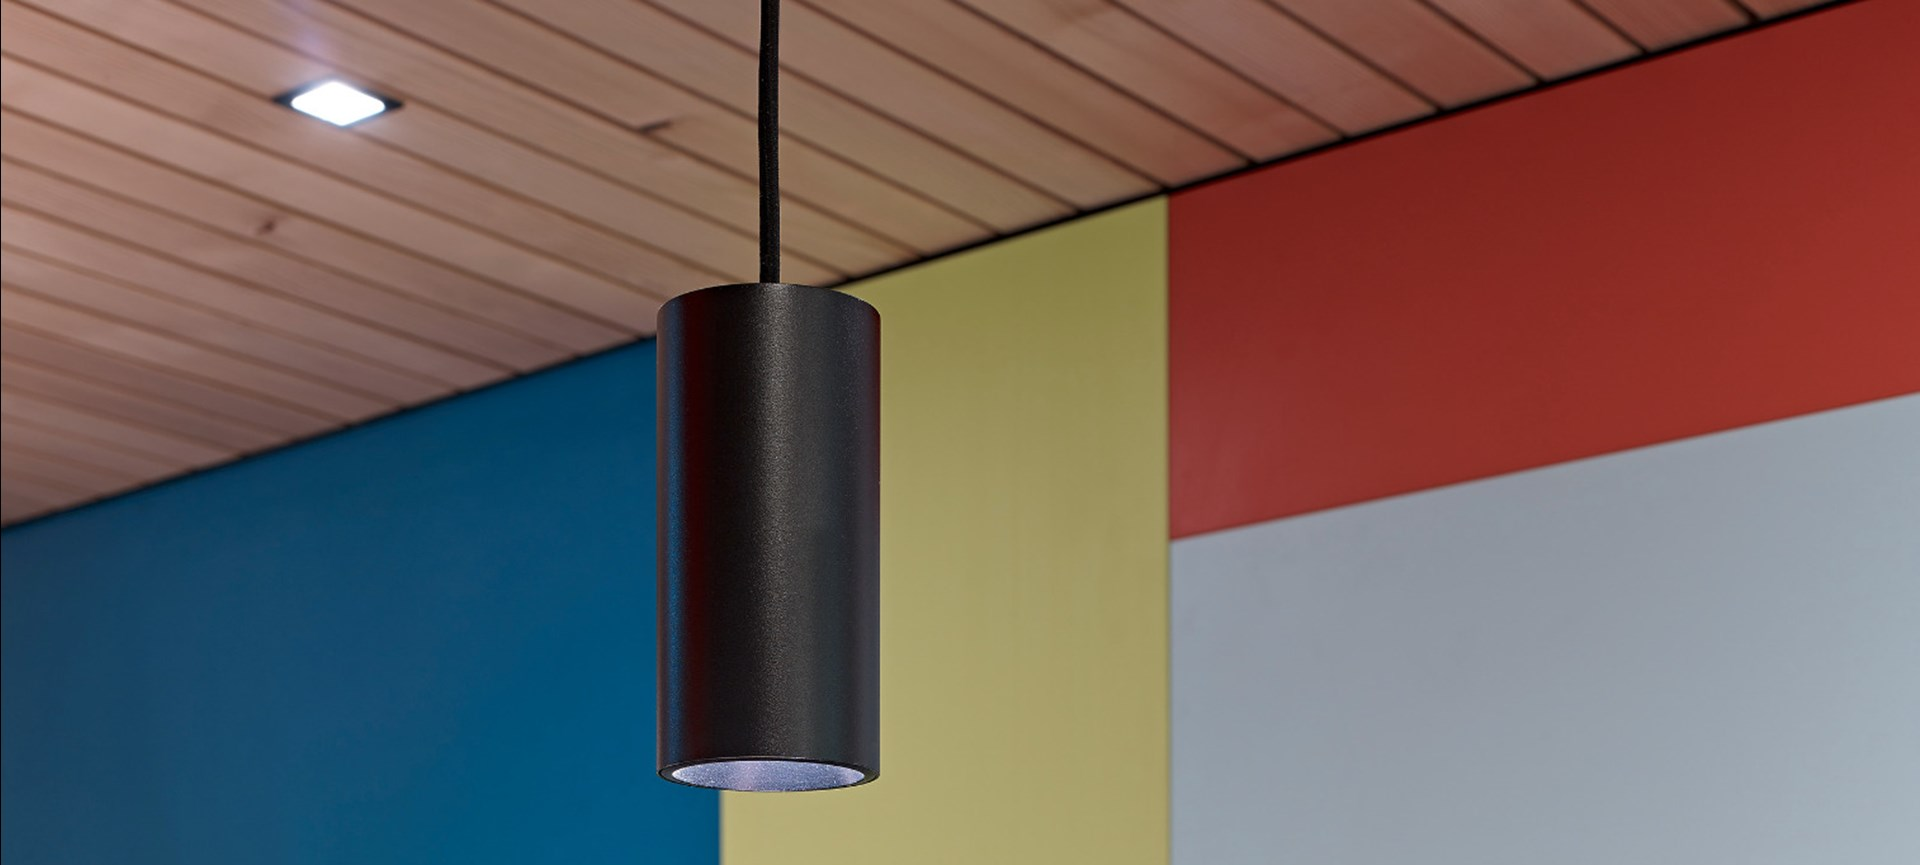 Invader Prolicht Product Family How To Install Recessed Lighting For Dramatic Effect The Aqua Sol